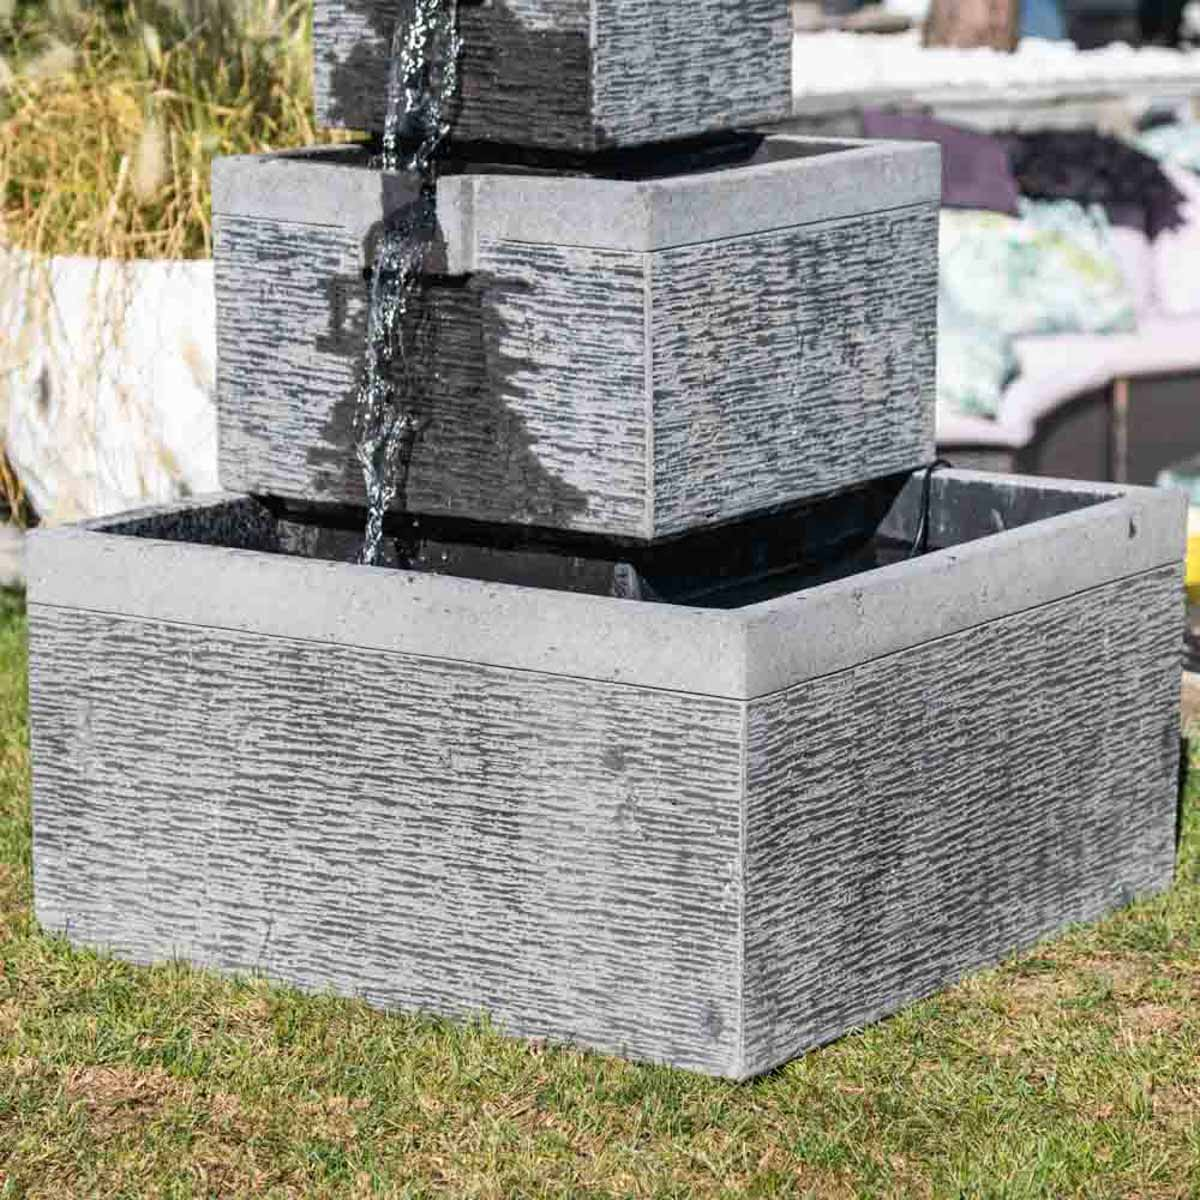 fontaine de jardin fontaine d bordement bassin carr 4 coupes noire grise h 106 cm. Black Bedroom Furniture Sets. Home Design Ideas